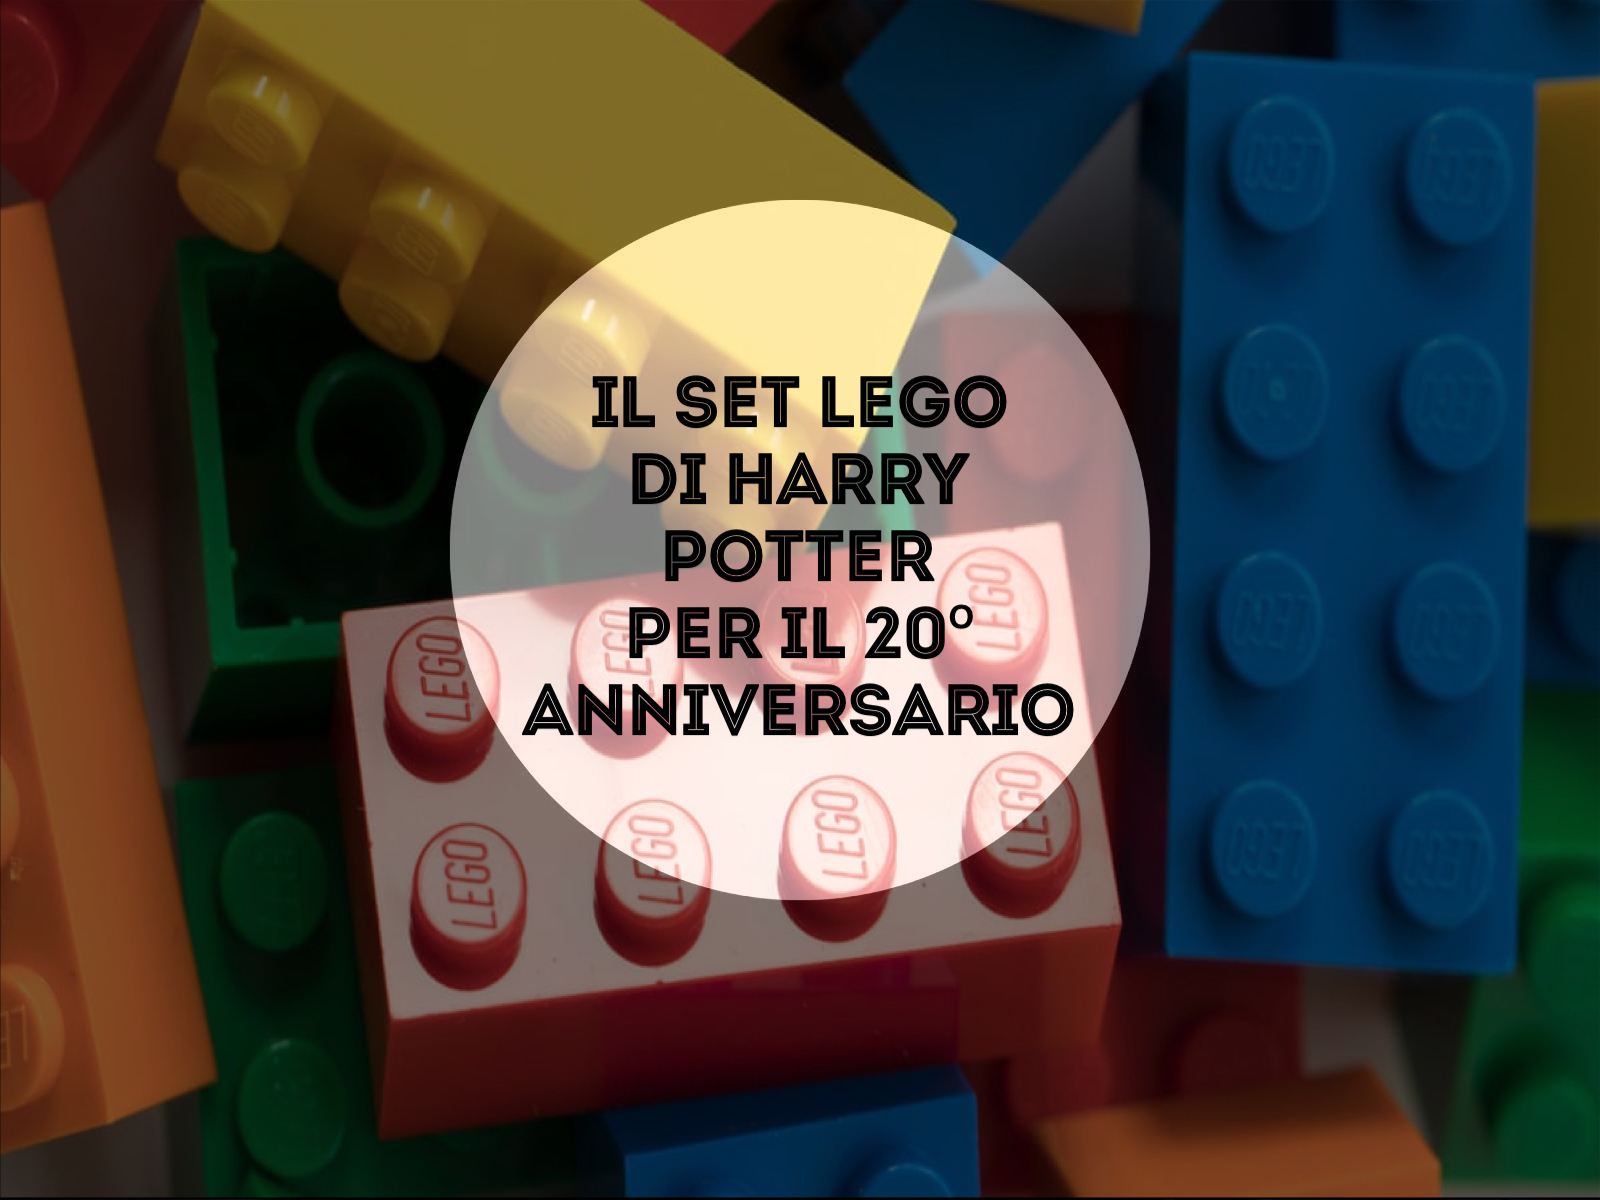 Il set LEGO di Harry Potter per il 20°anniversario